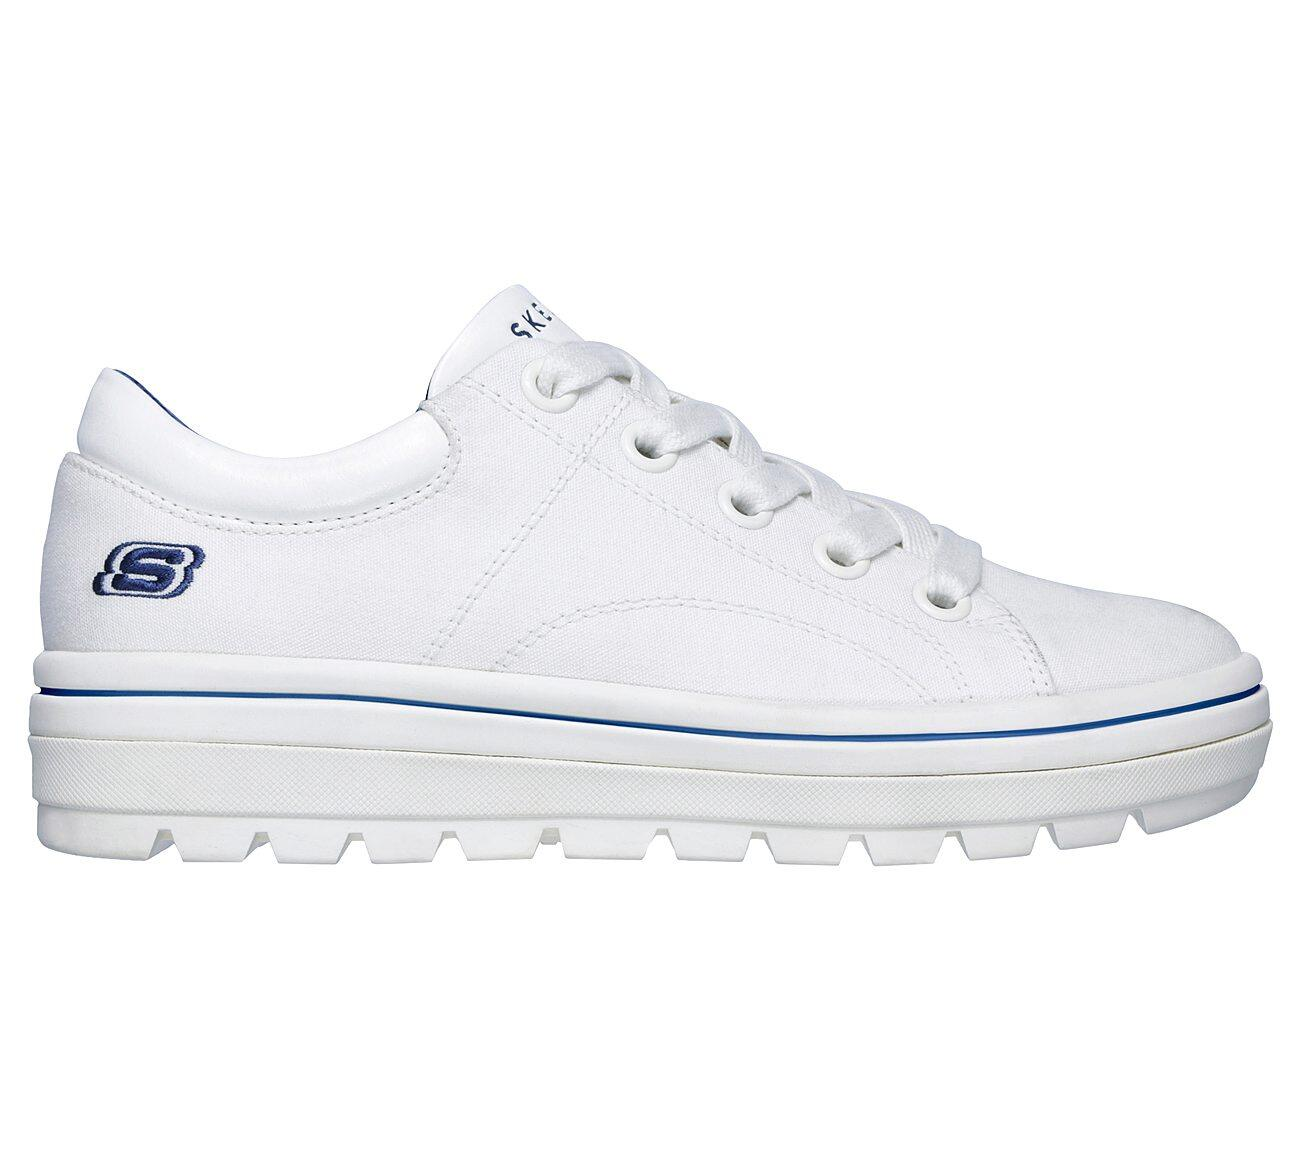 Skechers WOMEN STREET CLEATS 2 SKECHERS STREET - 74100-WHT